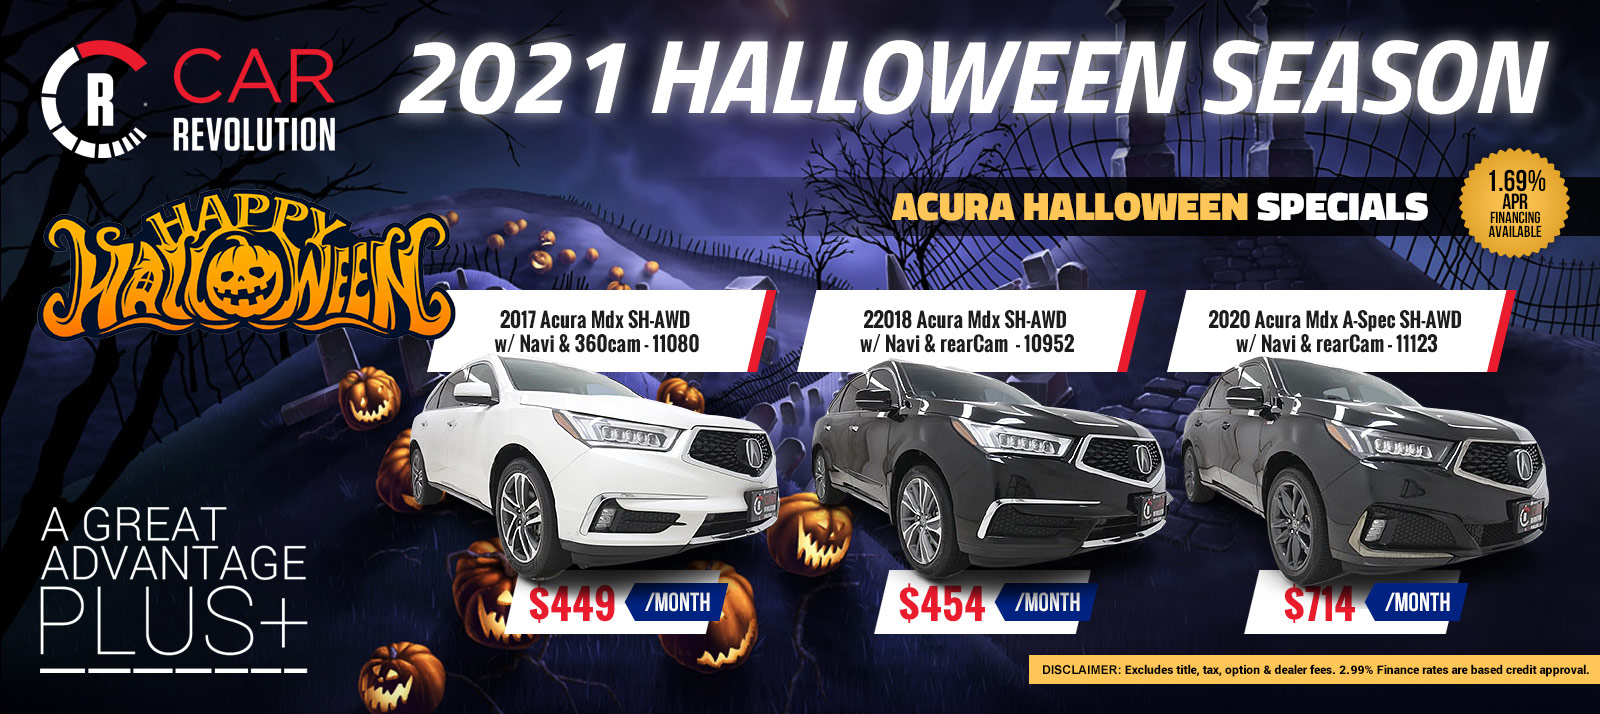 Acura Halloween Season Specials!